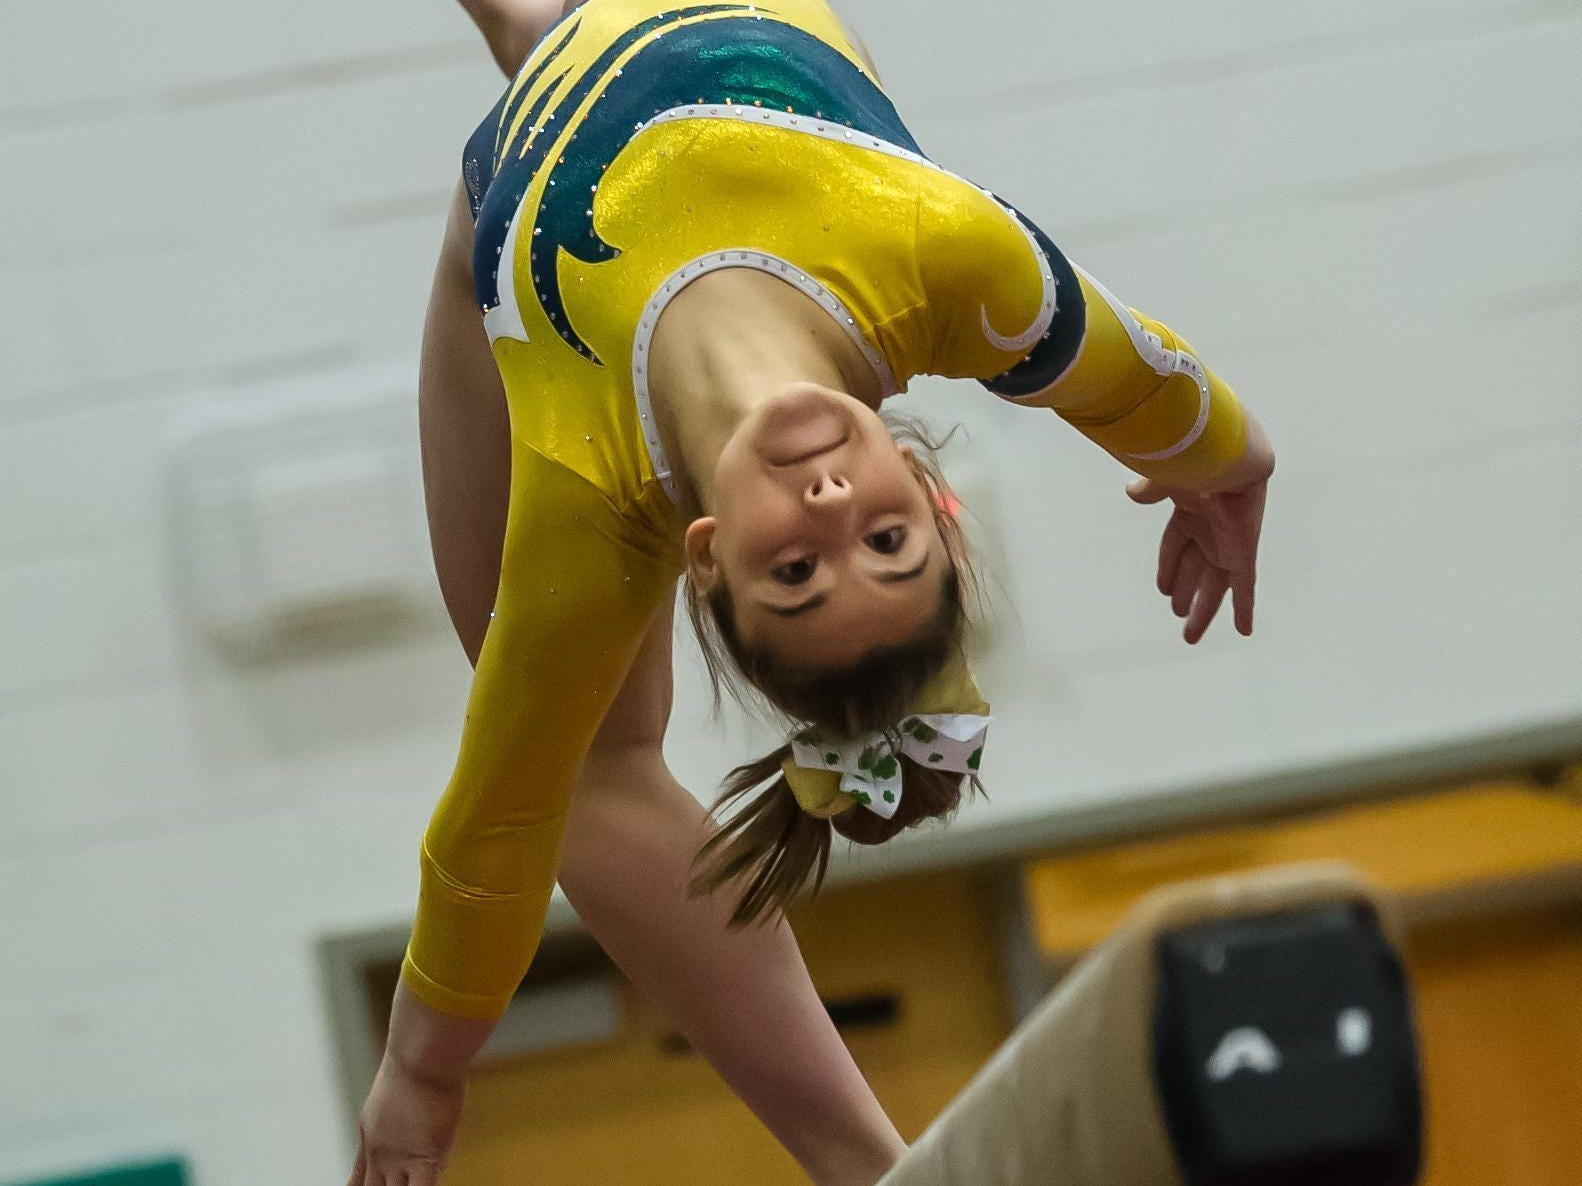 Red Bank Catholic's Ally Cucich competes on the beam in the NJSIAA Gymnastics state individual championship at Montgomery High School on Saturday Nov. 14, 2015. Photo by Jeff Granit